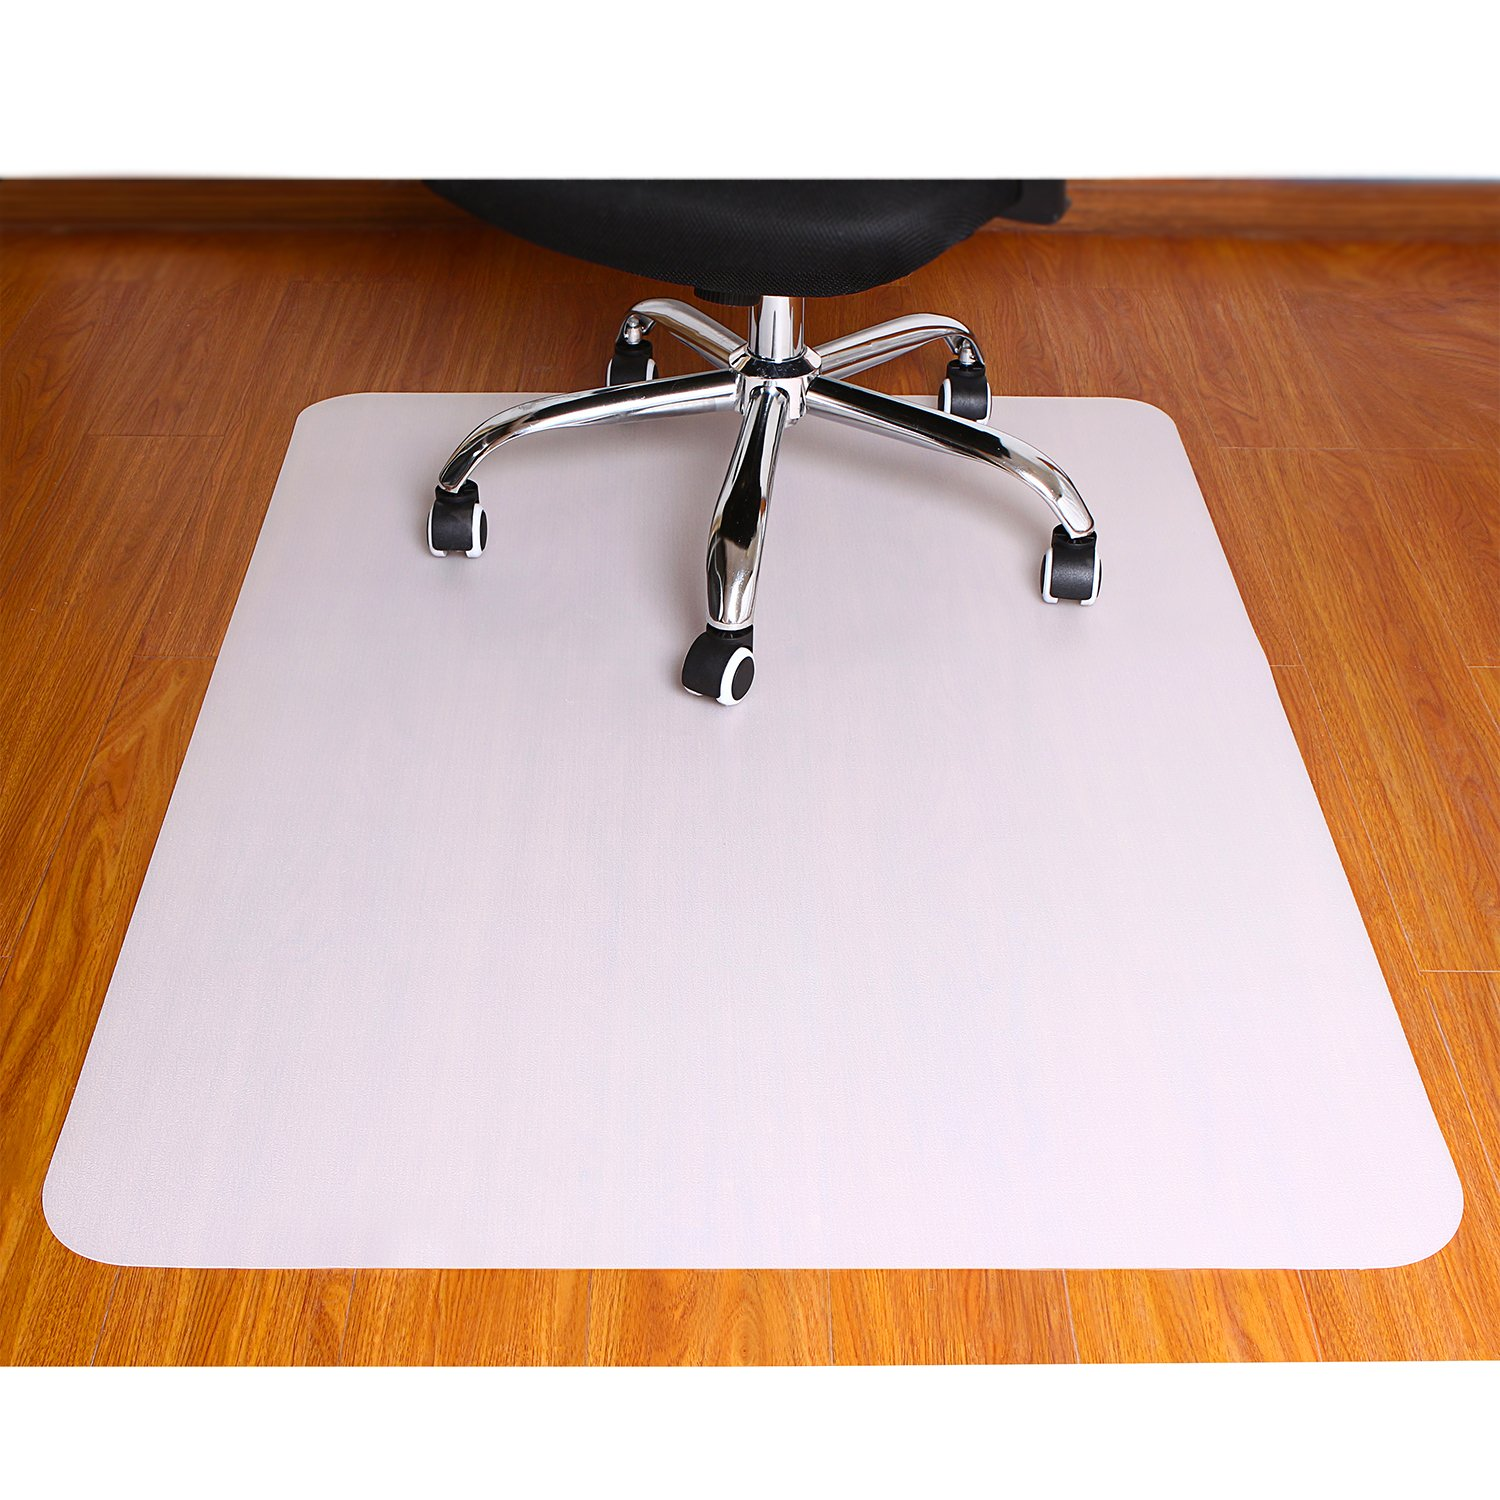 Polytene Office Chair Mat, 47''x35'',Hard Floor Protection with Rectangular Shaped Anti Slide Coating on the Underside,White